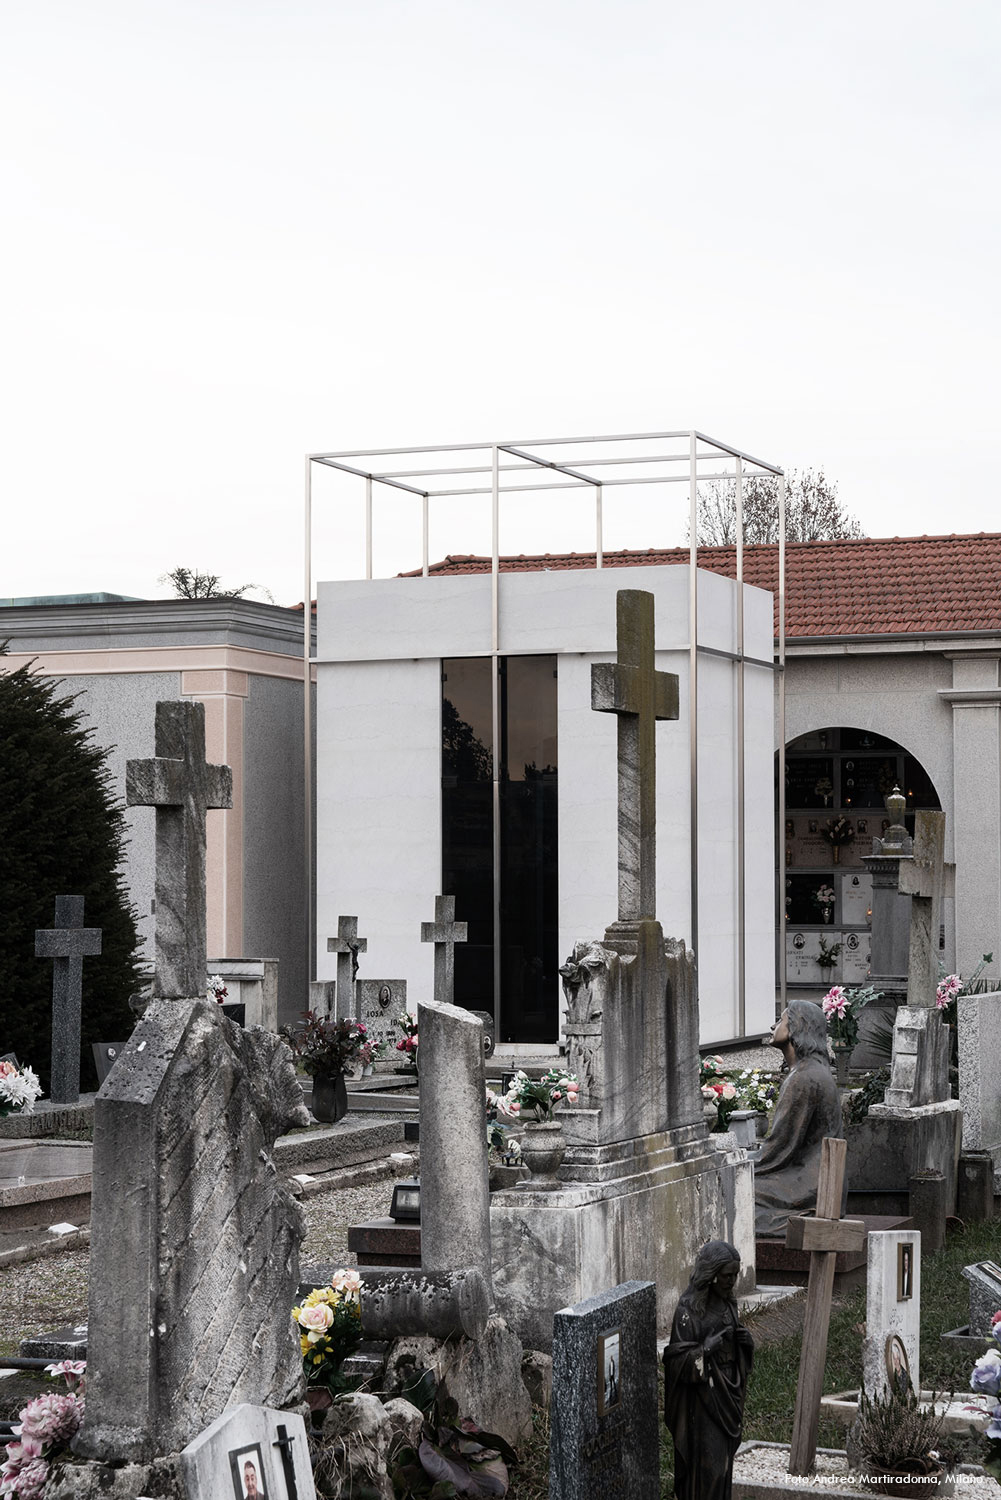 General view from the graves Andrea Martiradonna